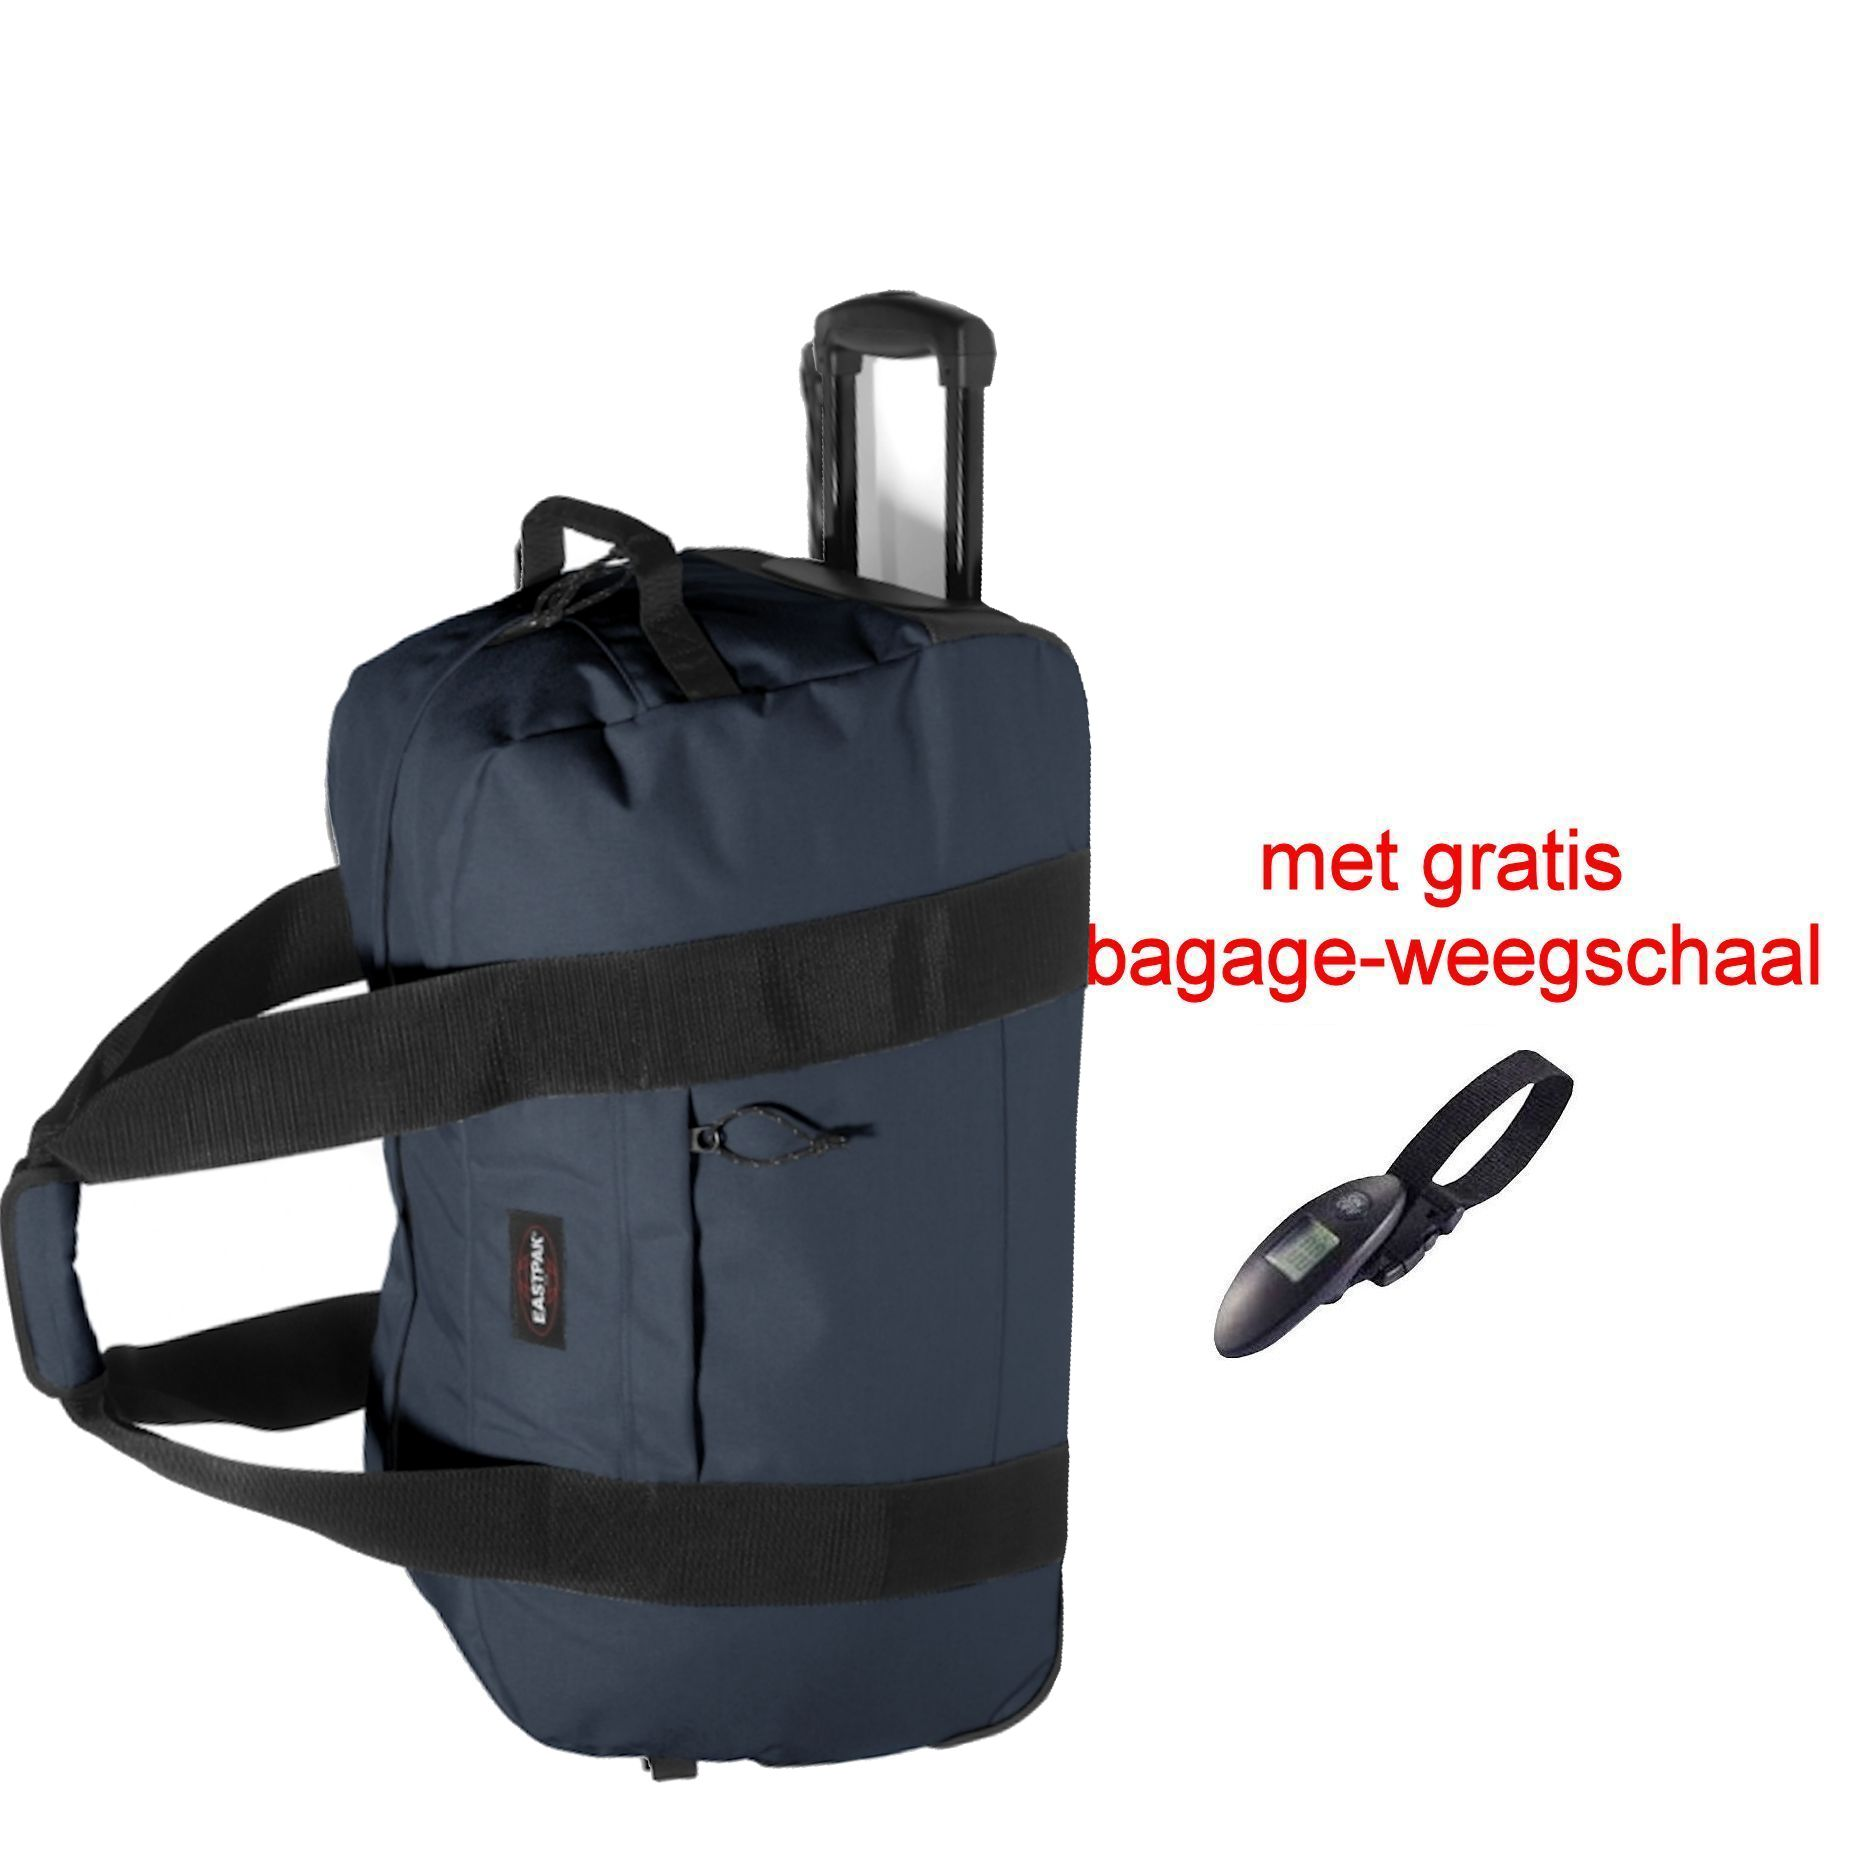 Reistas Op Wielen Eastpak Container 65 Authentic Wieltas Midnight Gratis Weegschaal Luggage 4 All